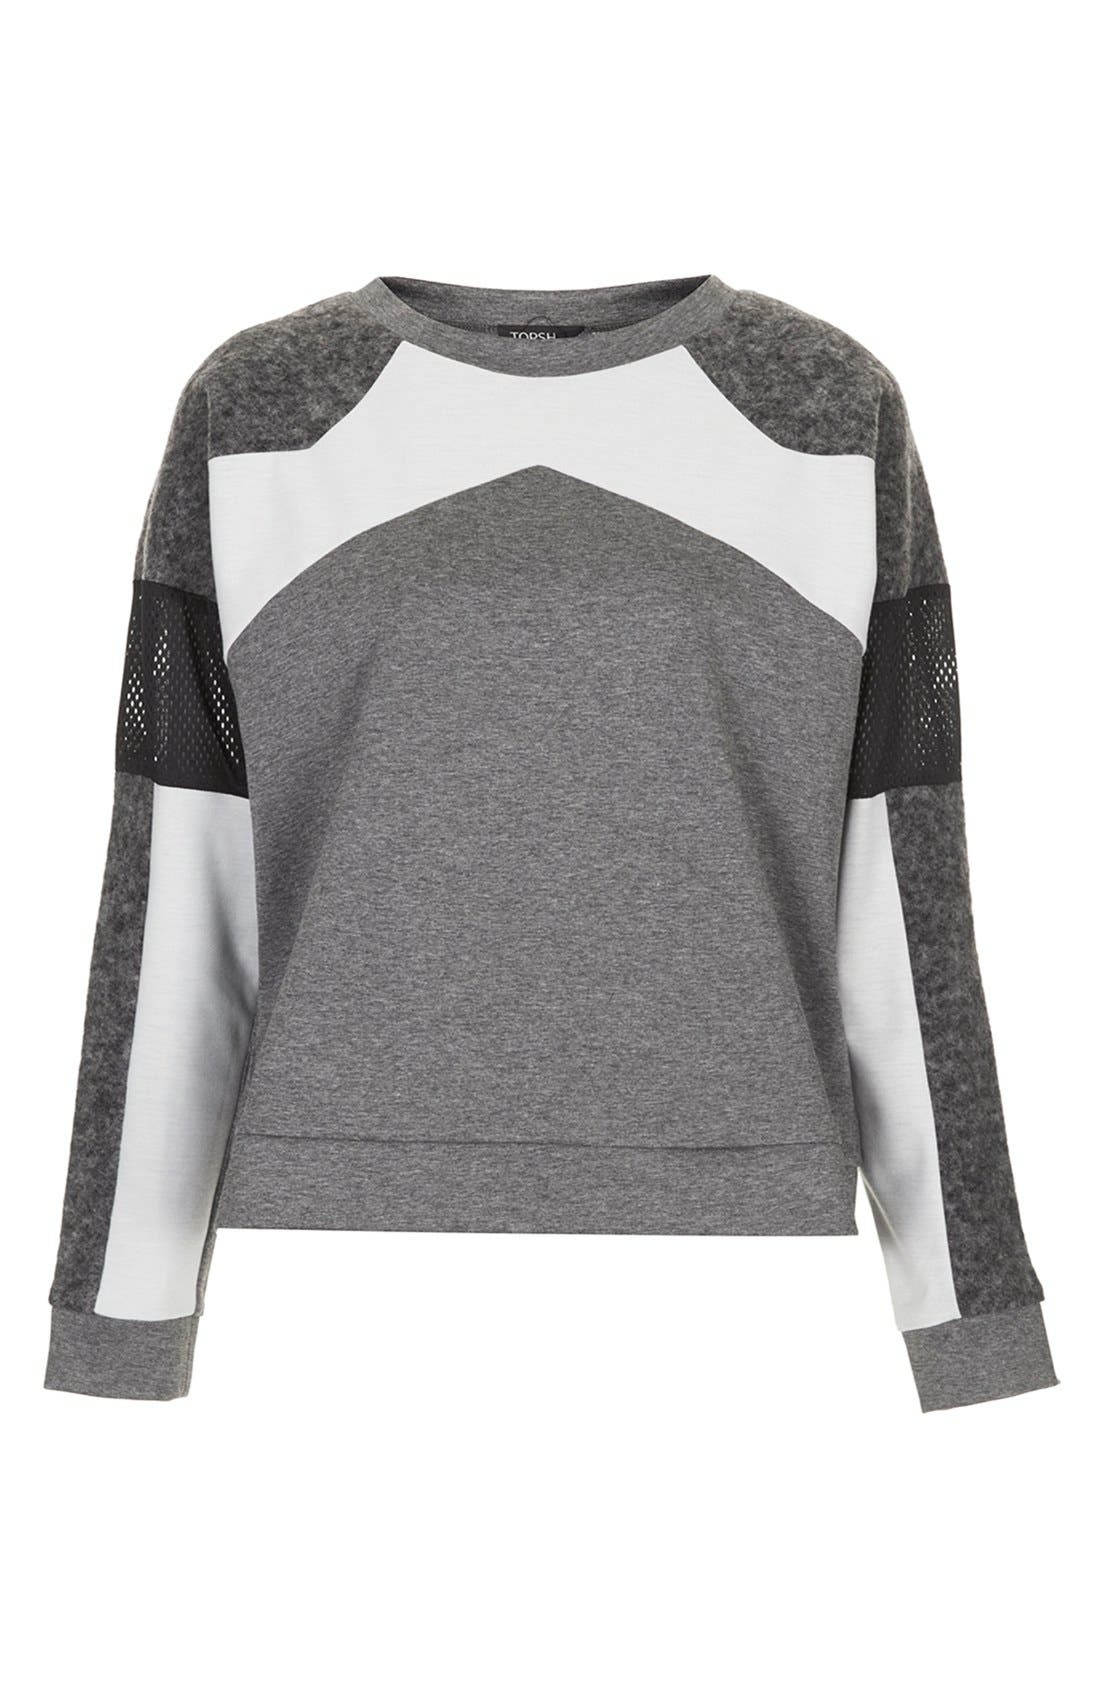 Alternate Image 3  - Topshop Perforated Mixed Media Sweatshirt